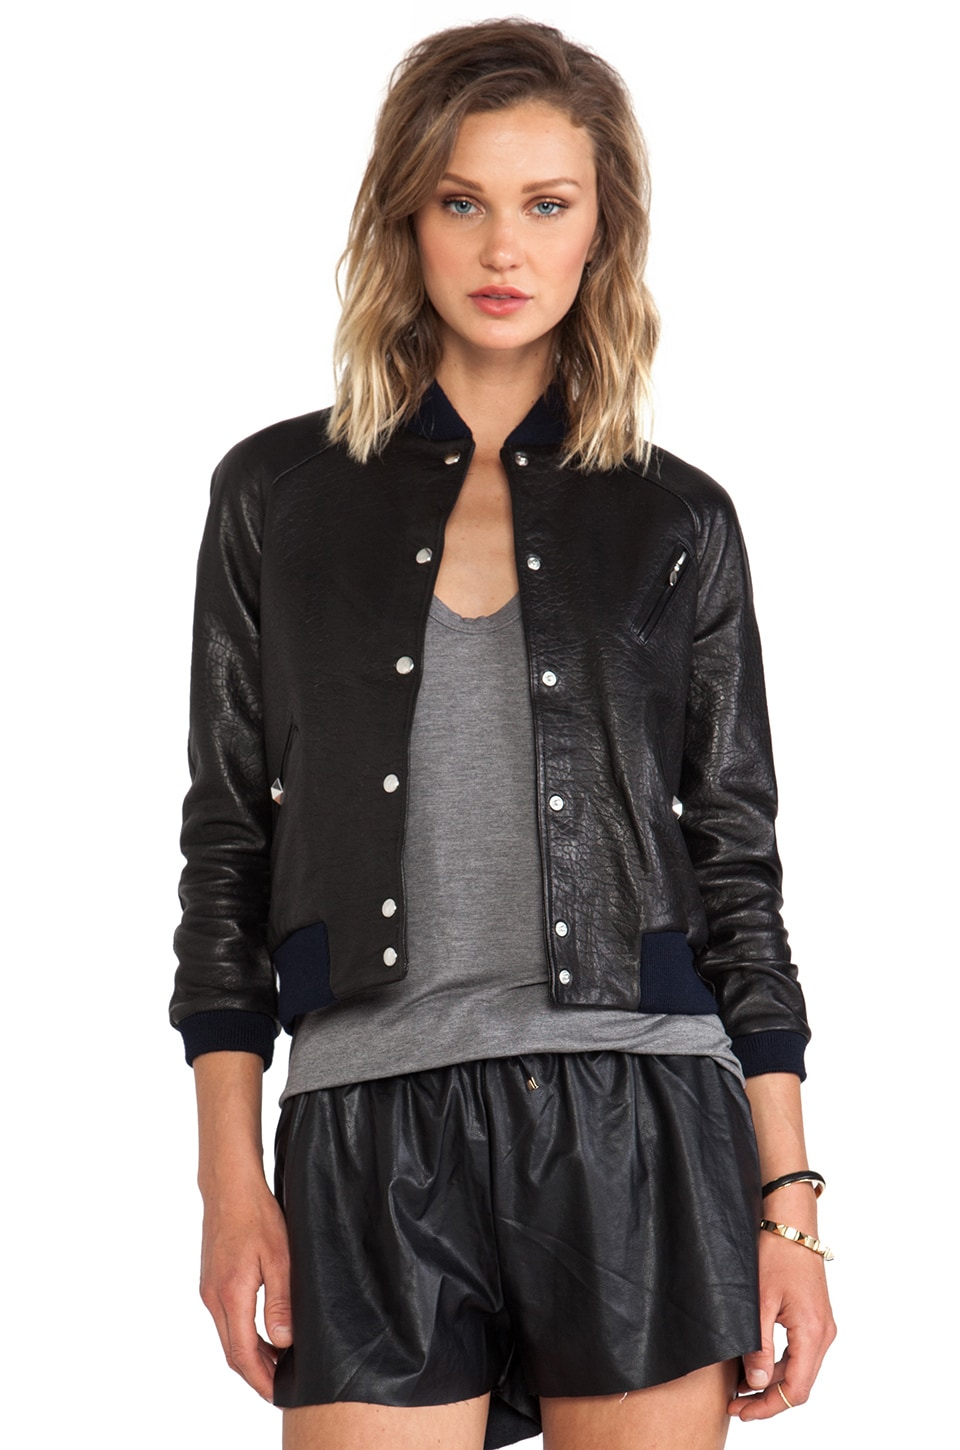 ROSEanna Paris Grease Leather Bomber in Noire